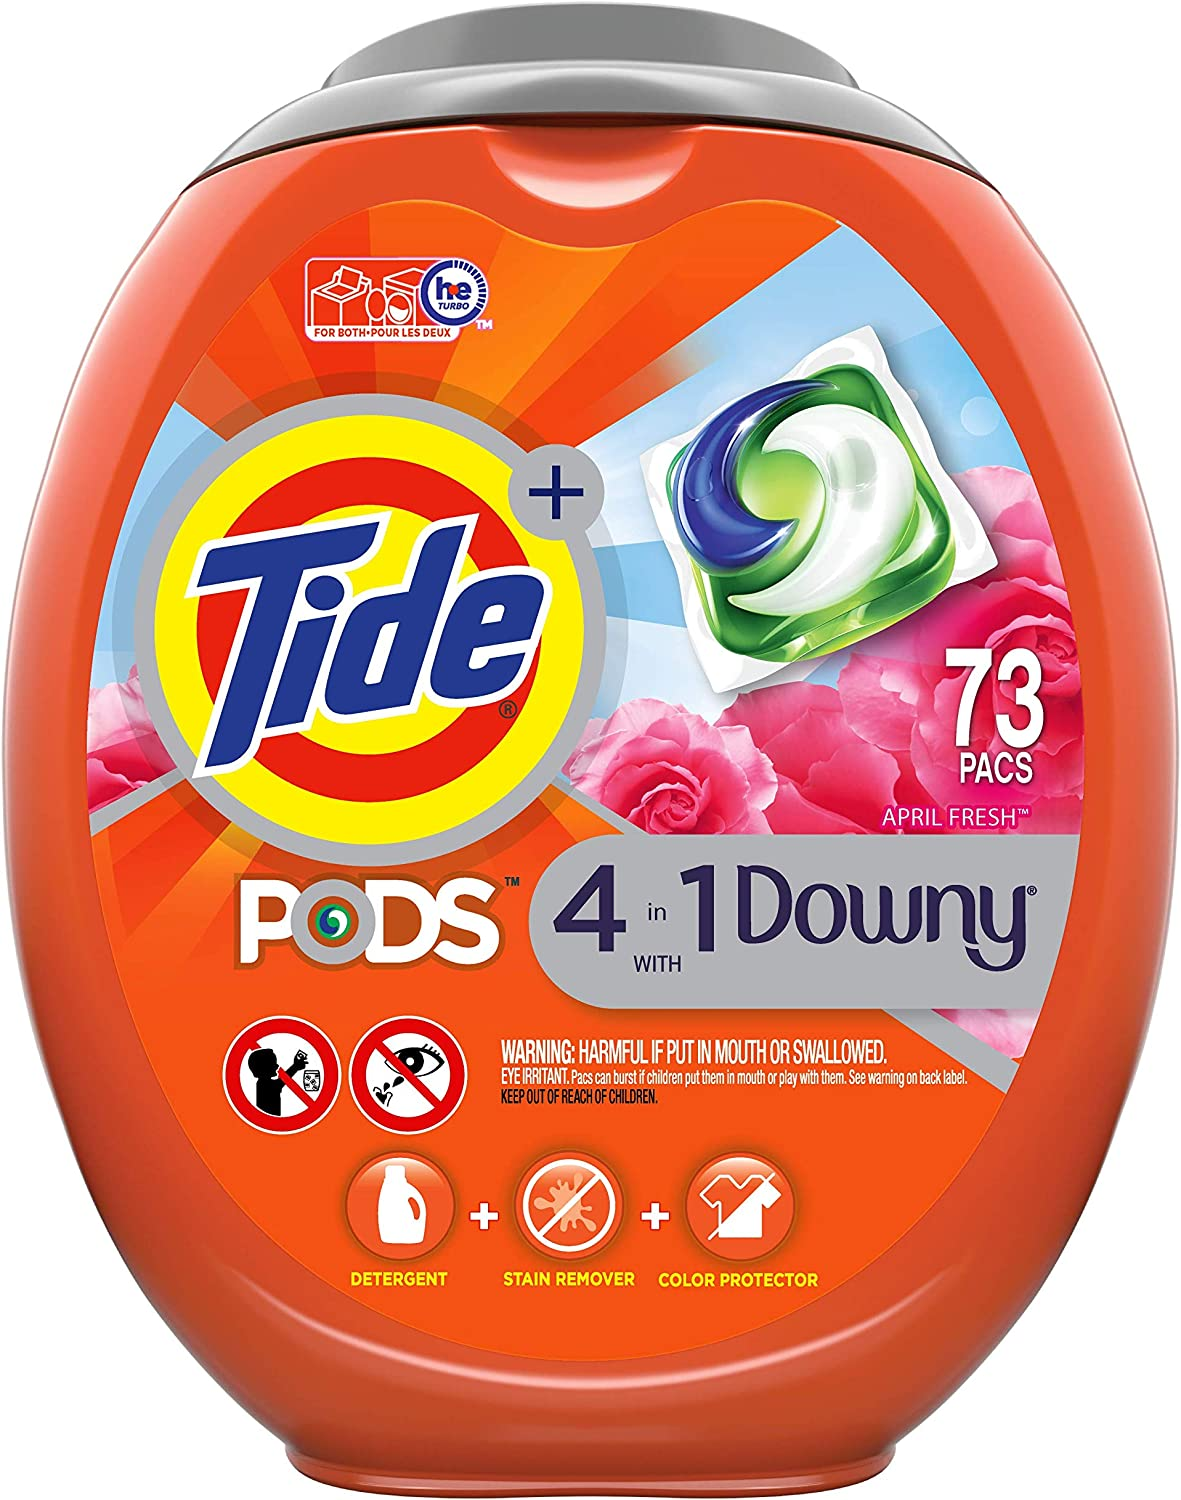 Tide Pods with Downy, Liquid Laundry Detergent Pacs, April Fresh, 73 Count - Packaging May Vary